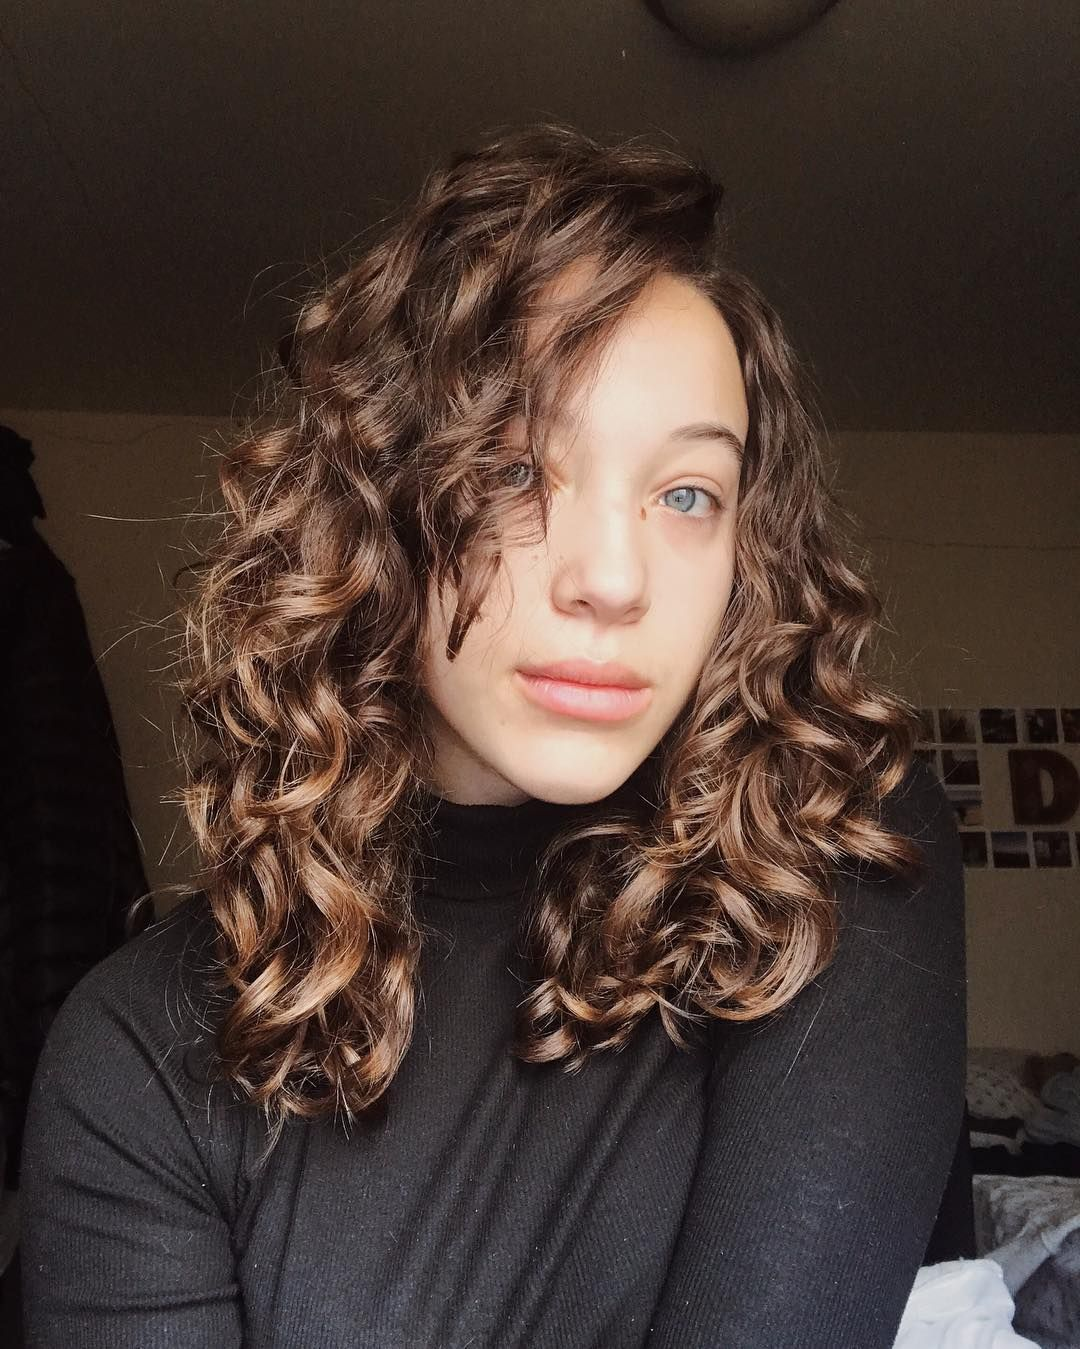 75 Best Curly Hairstyles Ideas 2020 Hairstyles For Curly Hair Curly Hair Styles Curly Hair Trends Textured Hair